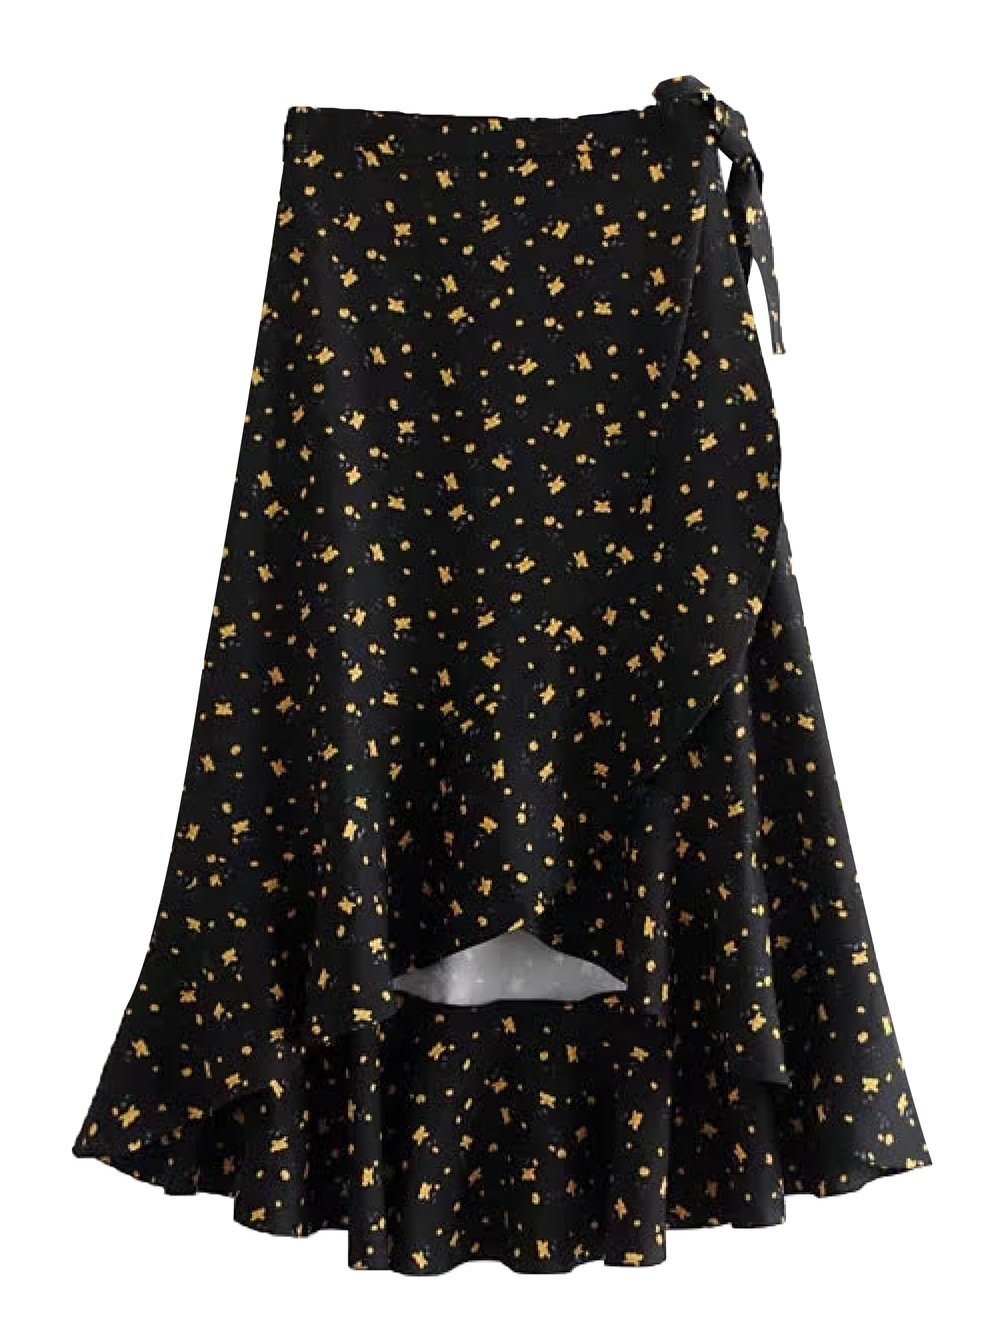 Goodnight Macaroon 'Jan' Floral Print Tied Waist High-low Skirt